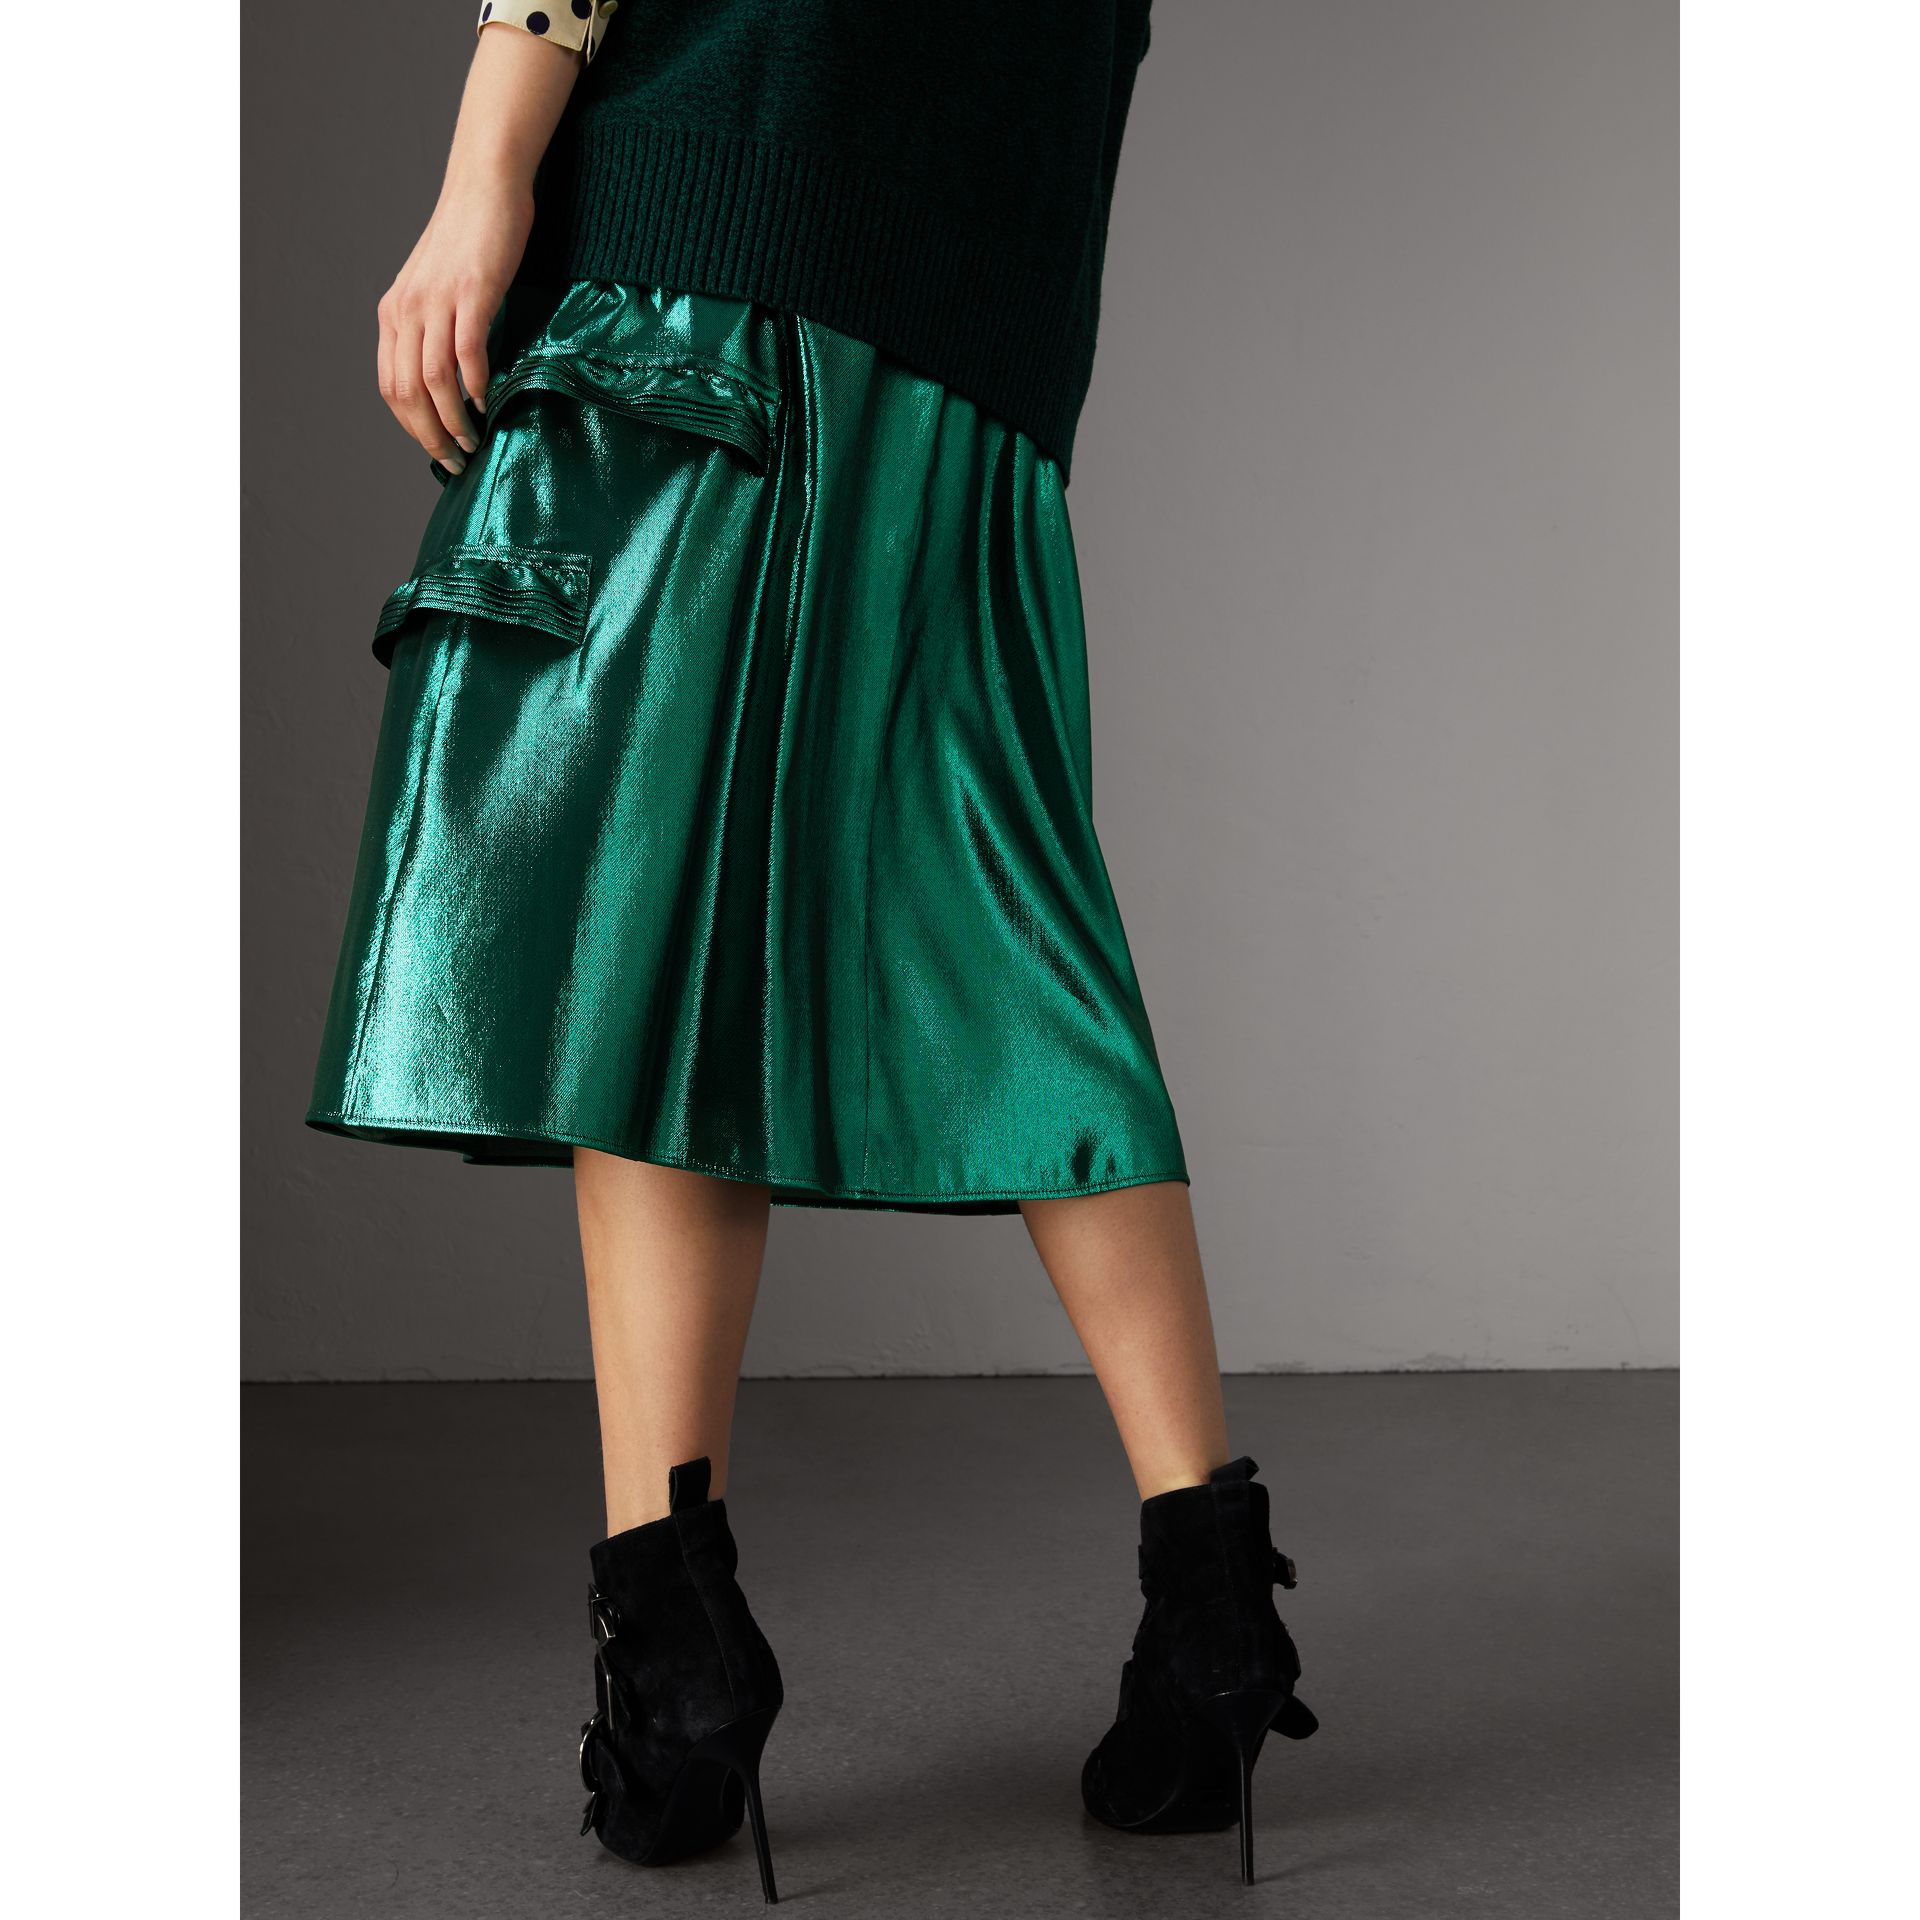 Ruffle Detail Lamé Skirt – Online Exclusive in Turquoise - Women | Burberry Hong Kong - gallery image 3